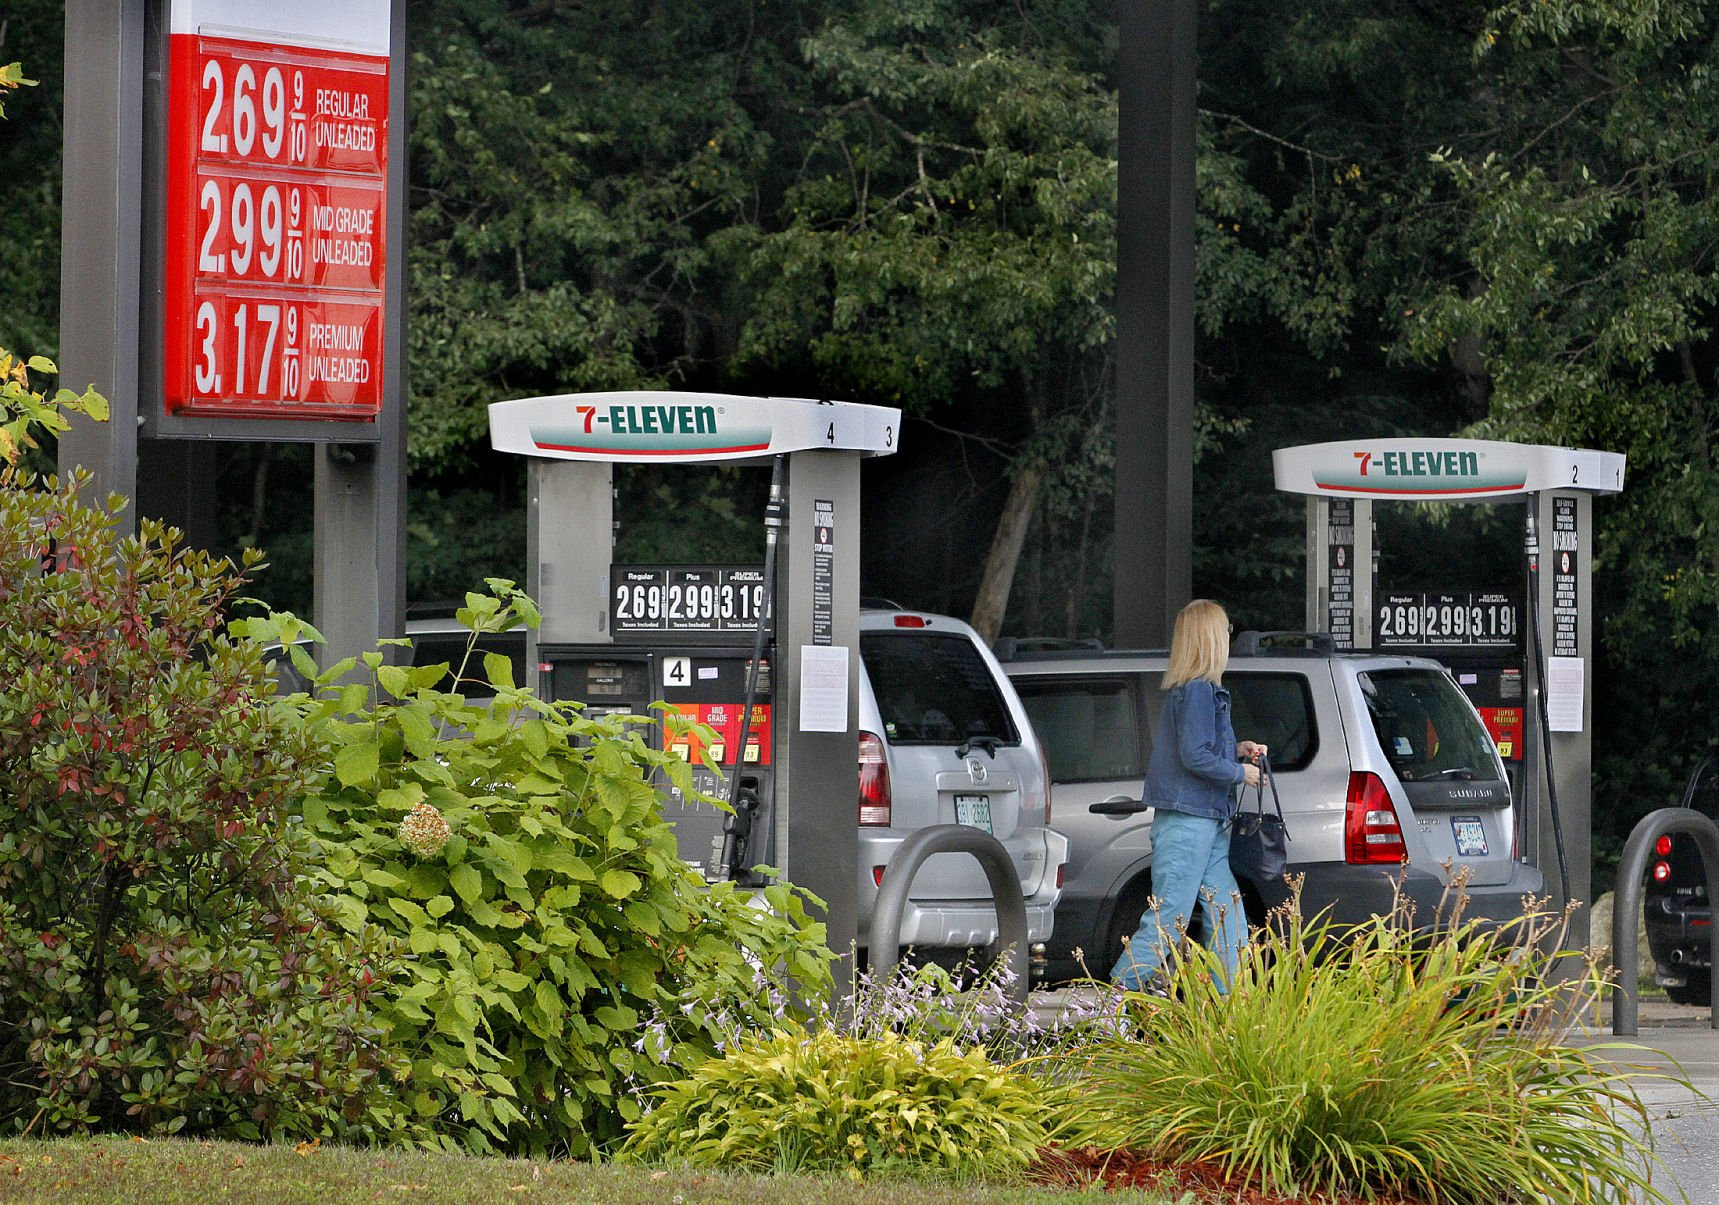 Gas prices rise post hurricane, but not to staggering amounts